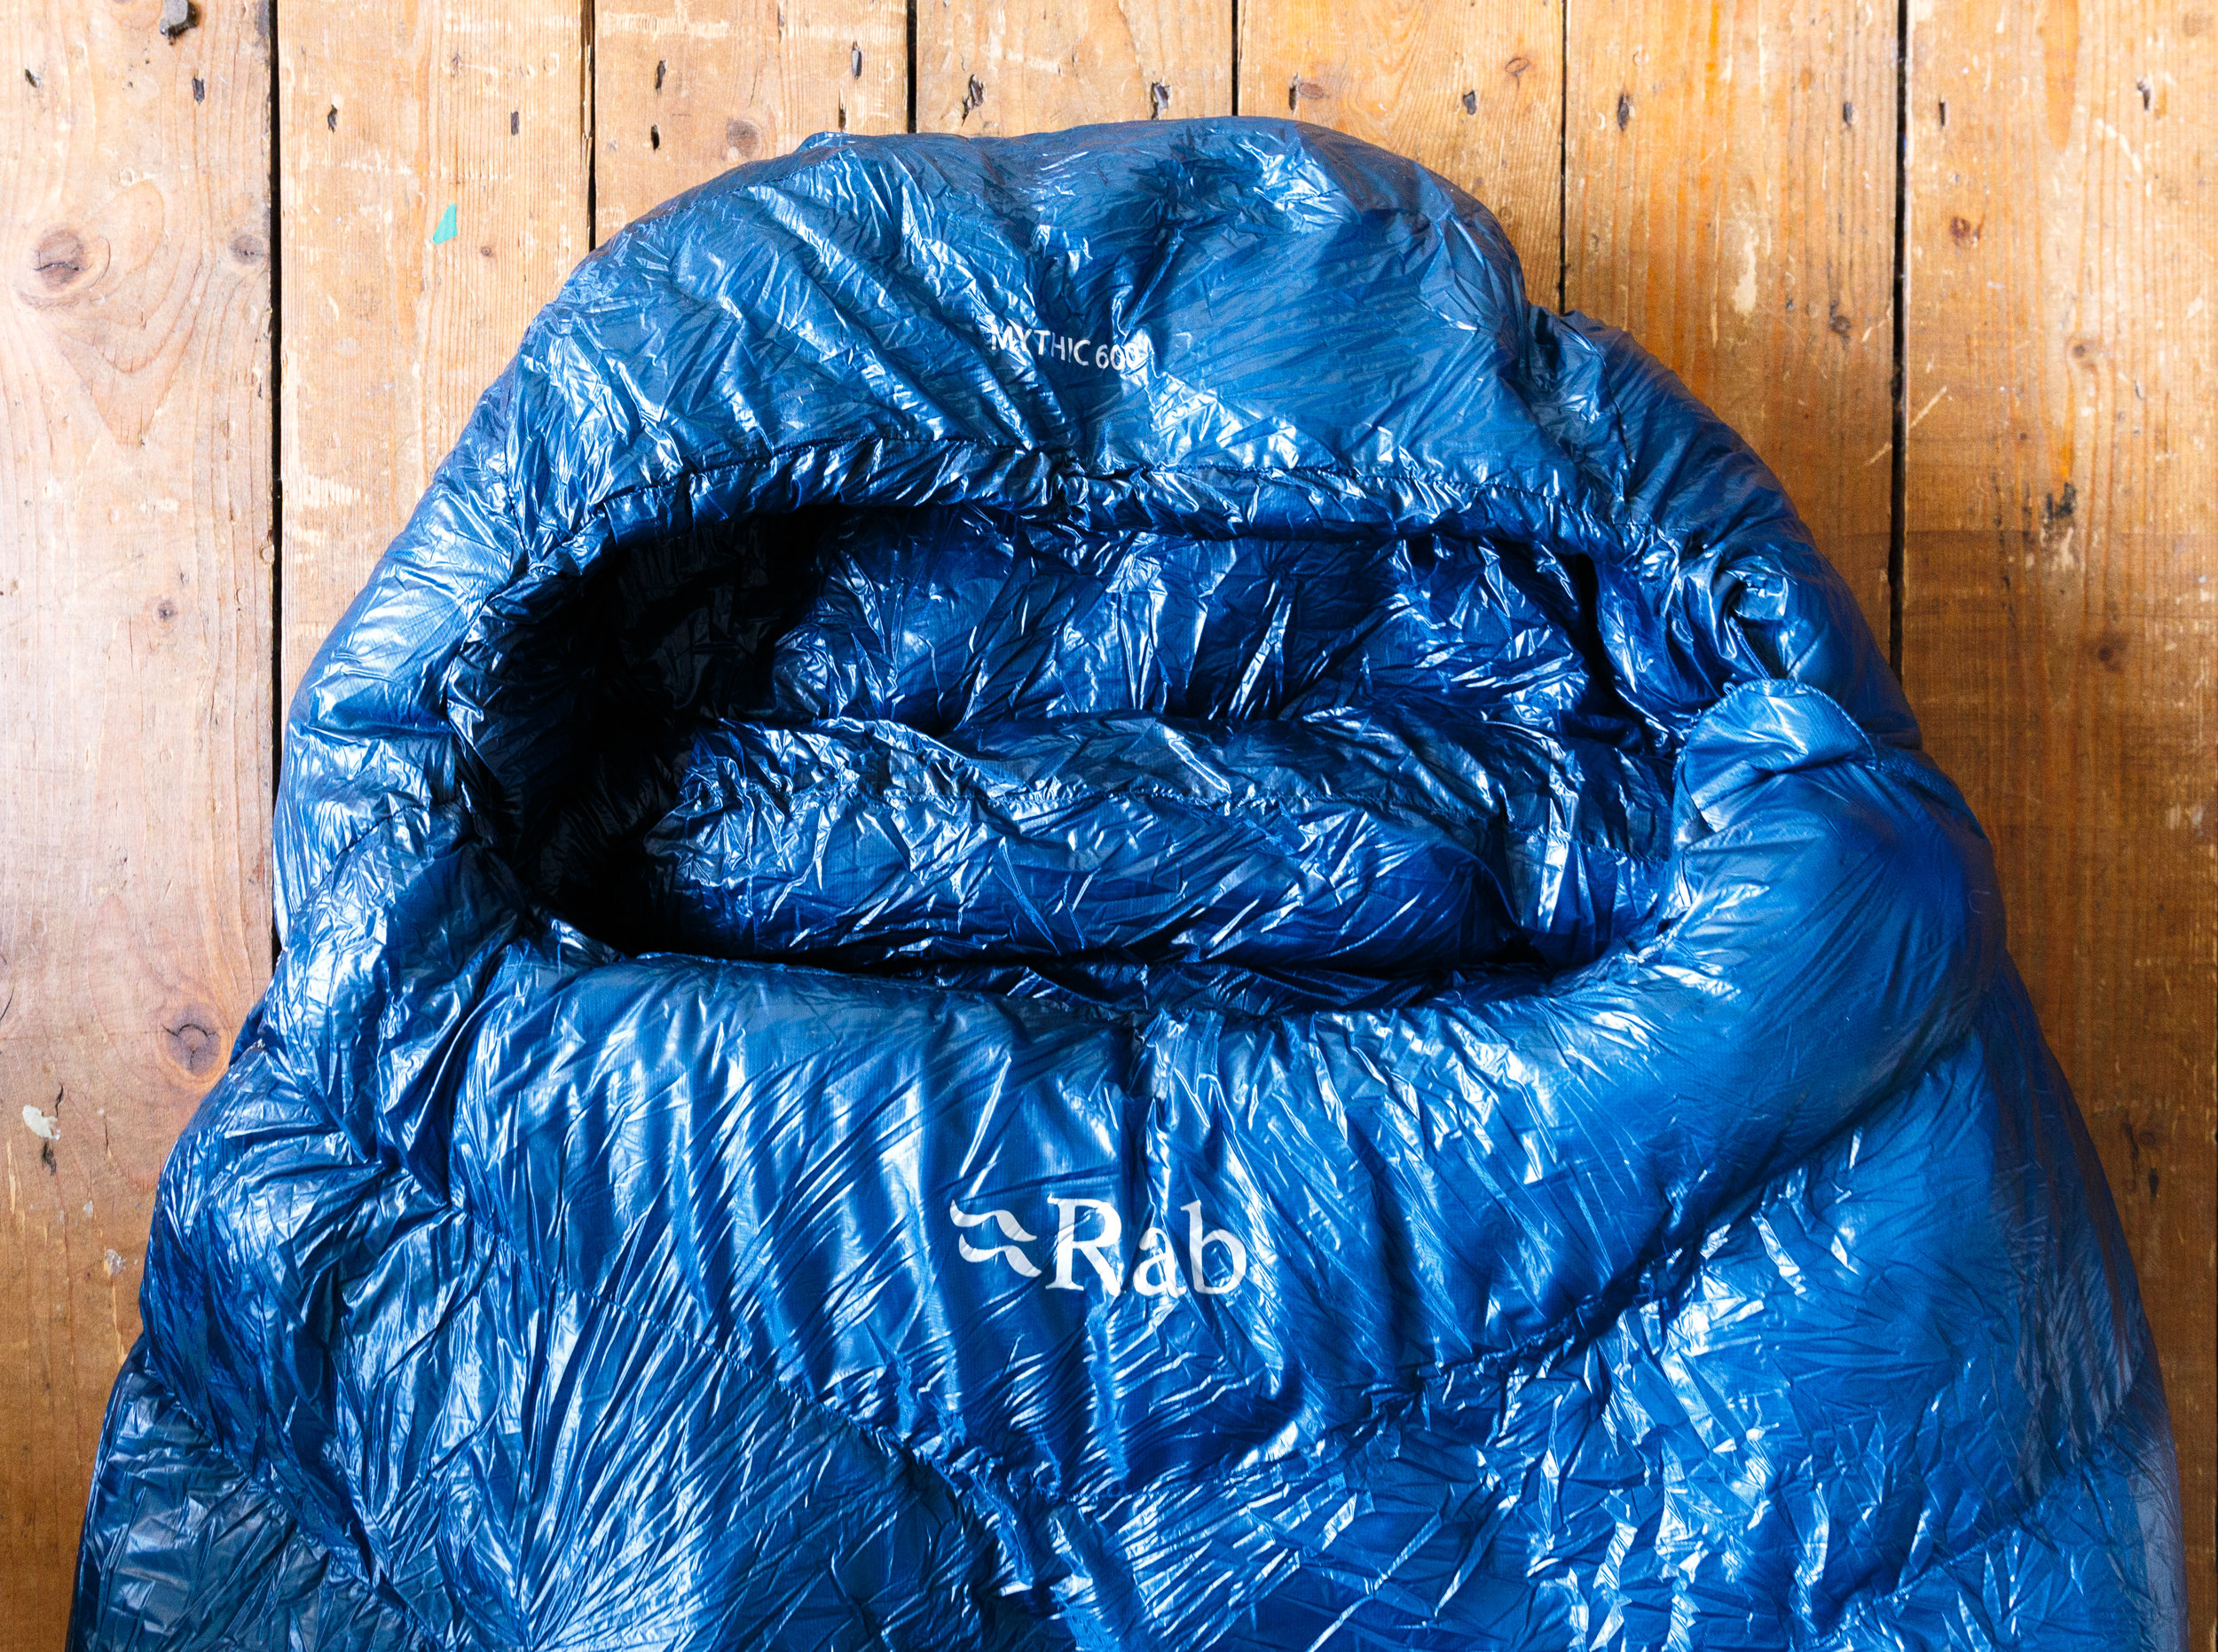 The Rab Mythic 600 sleeping bag